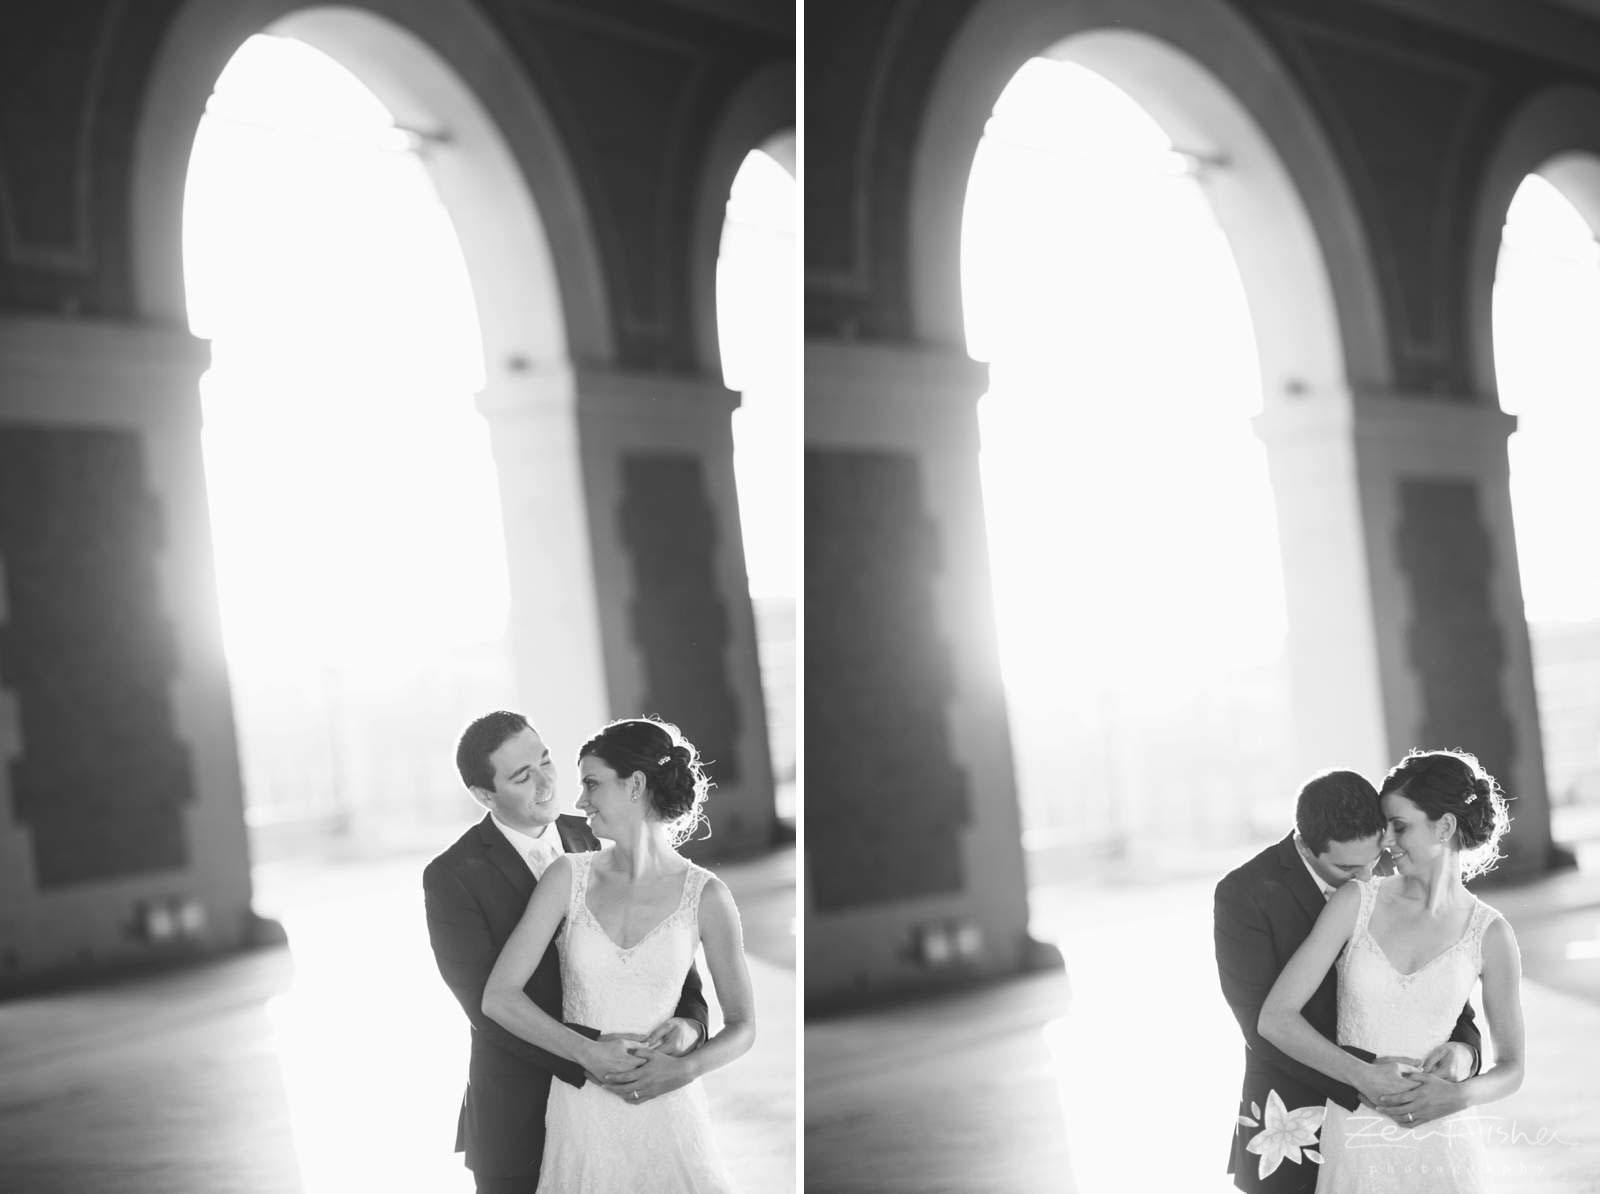 Black and white romantic bride and groom portraits with architectural elements and ethereal light.